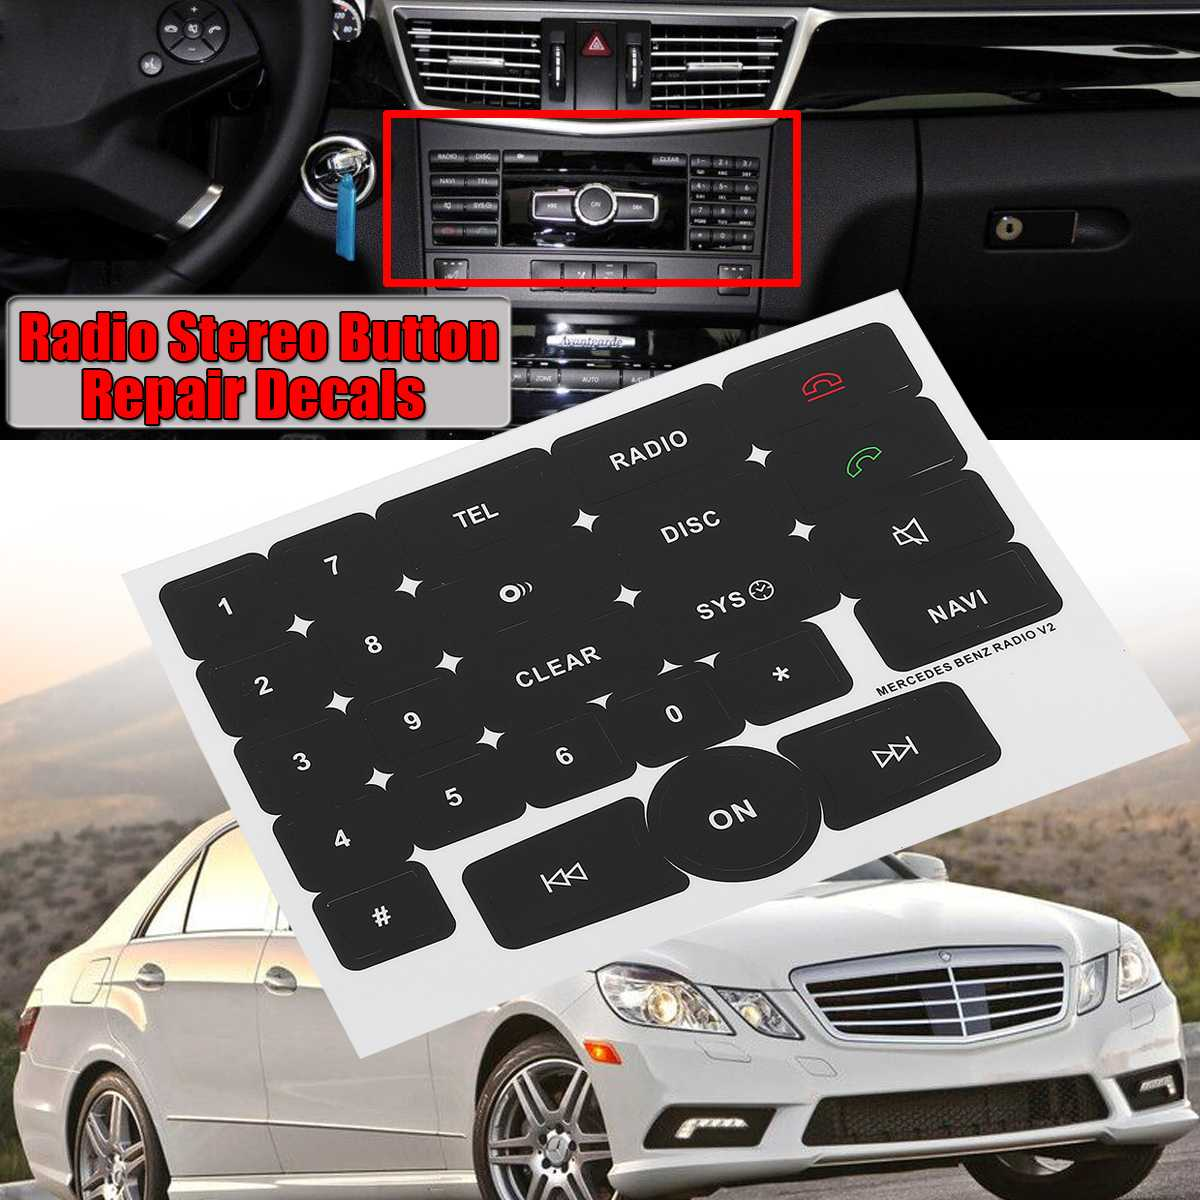 Black Car Media Radio Stereo Button Repair Decals Stickers For Mercedes For Benz Radio V2 Repair Car Stickers Fix Ugly Button